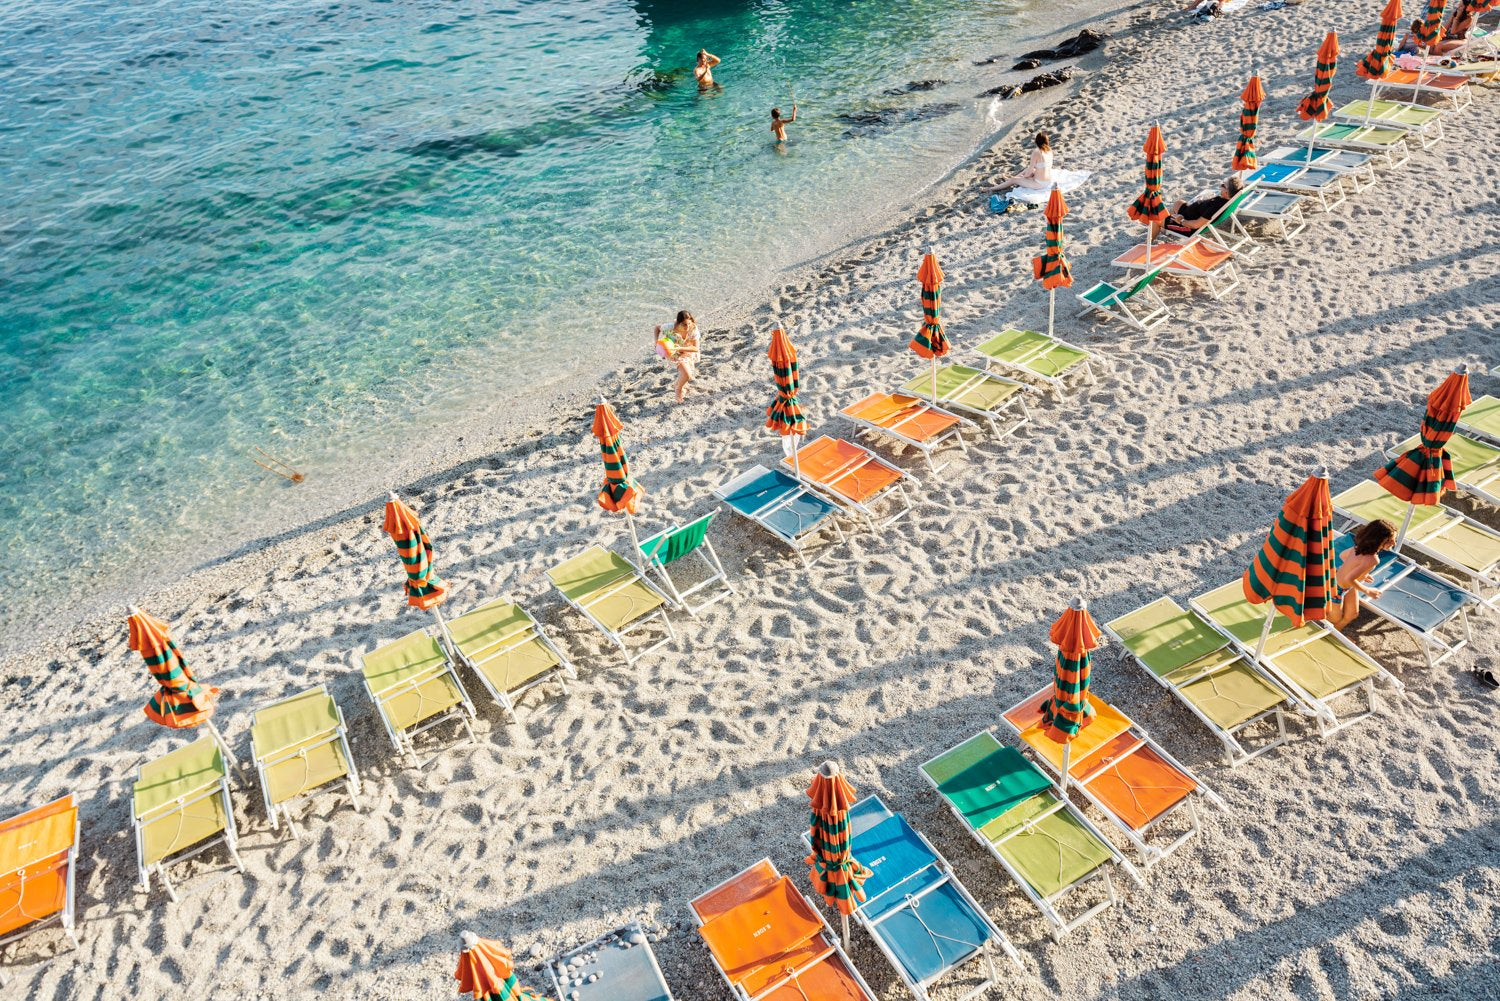 Orange, green and blue chairs on beach in Cinque Terre